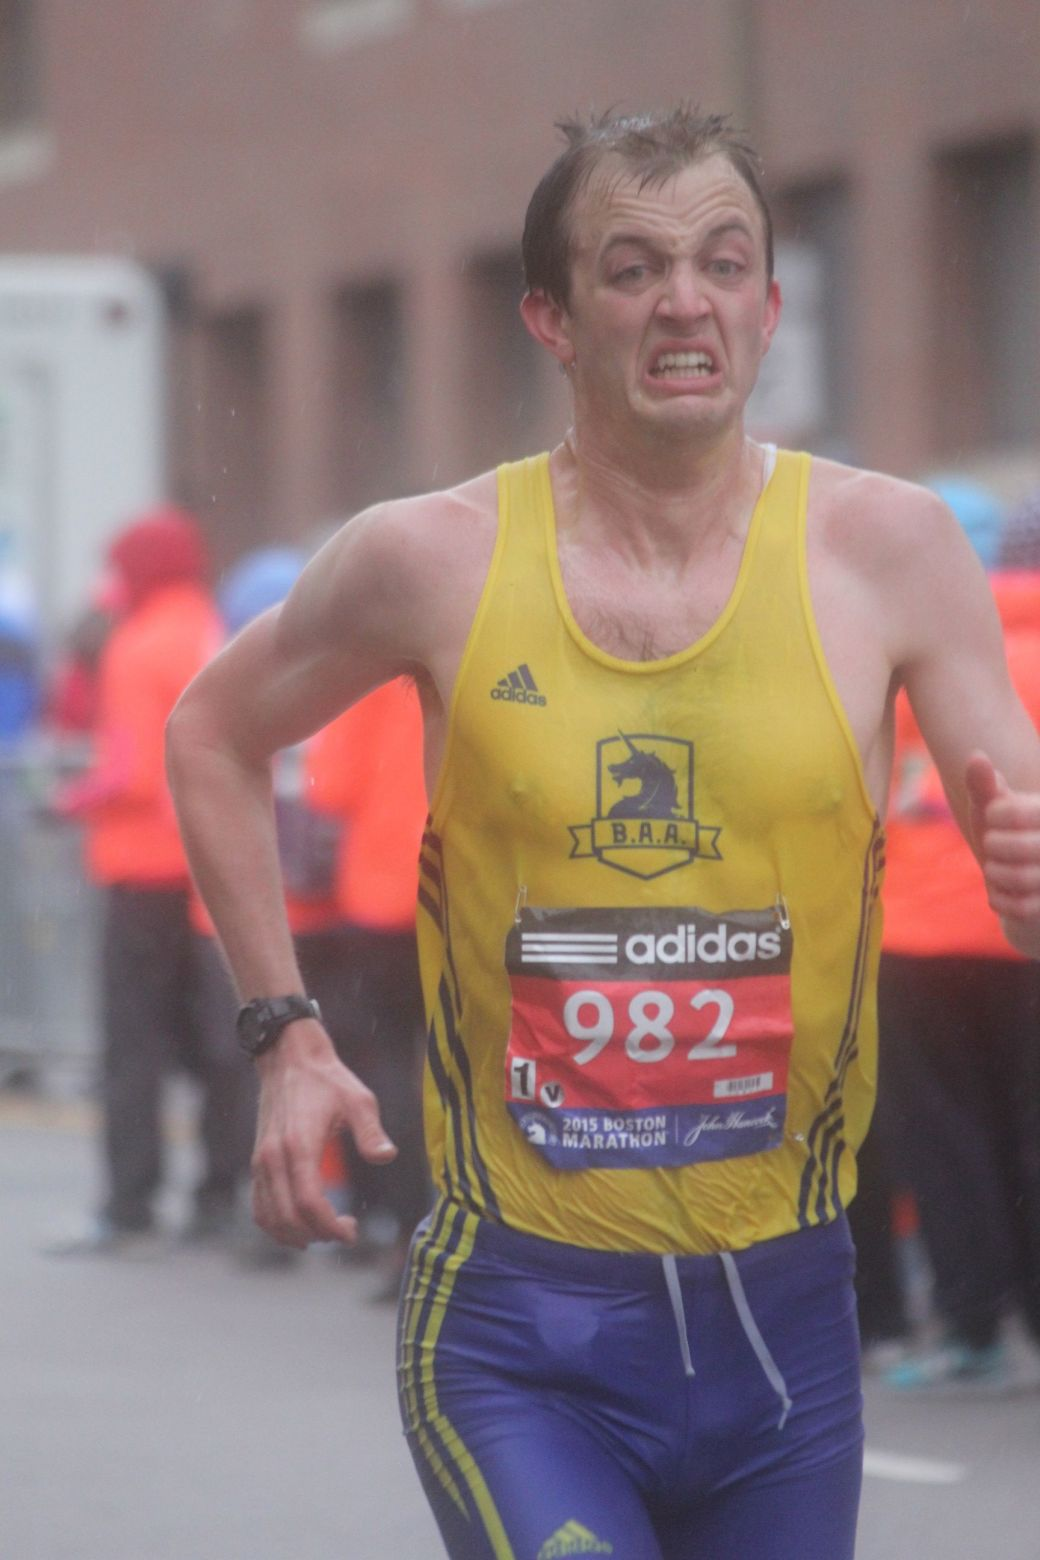 boston marathon april 20 2015 racer number 982 2